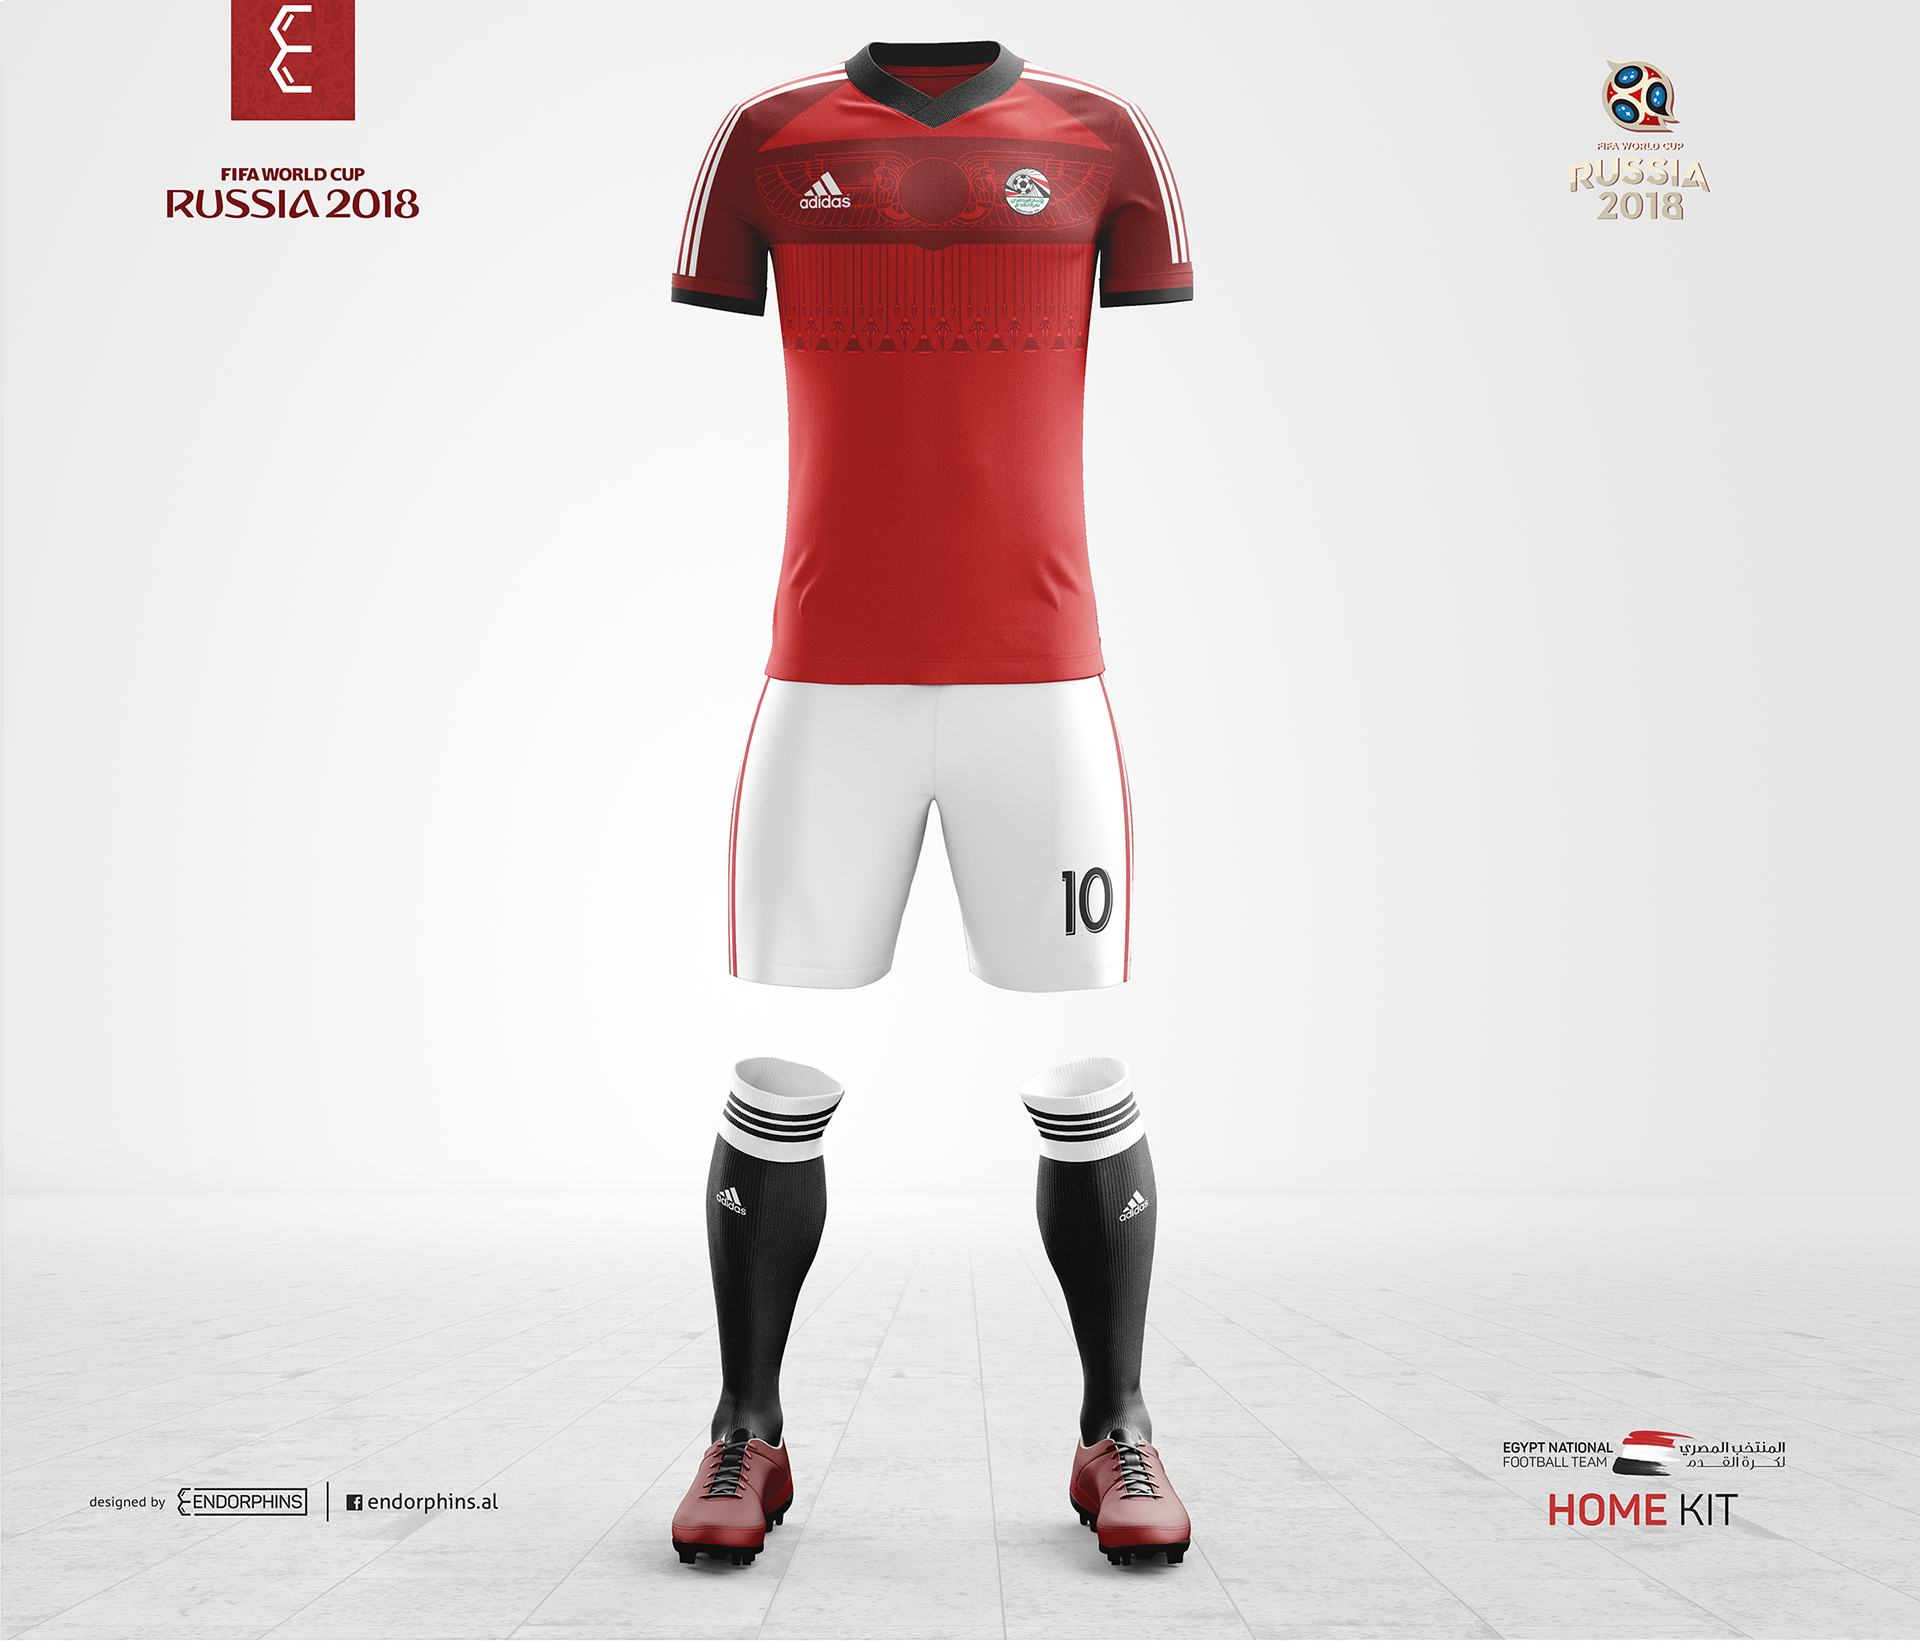 new products 4a286 fd96c Egypt National Football Team (FIFA World Cup 2018) on Behance